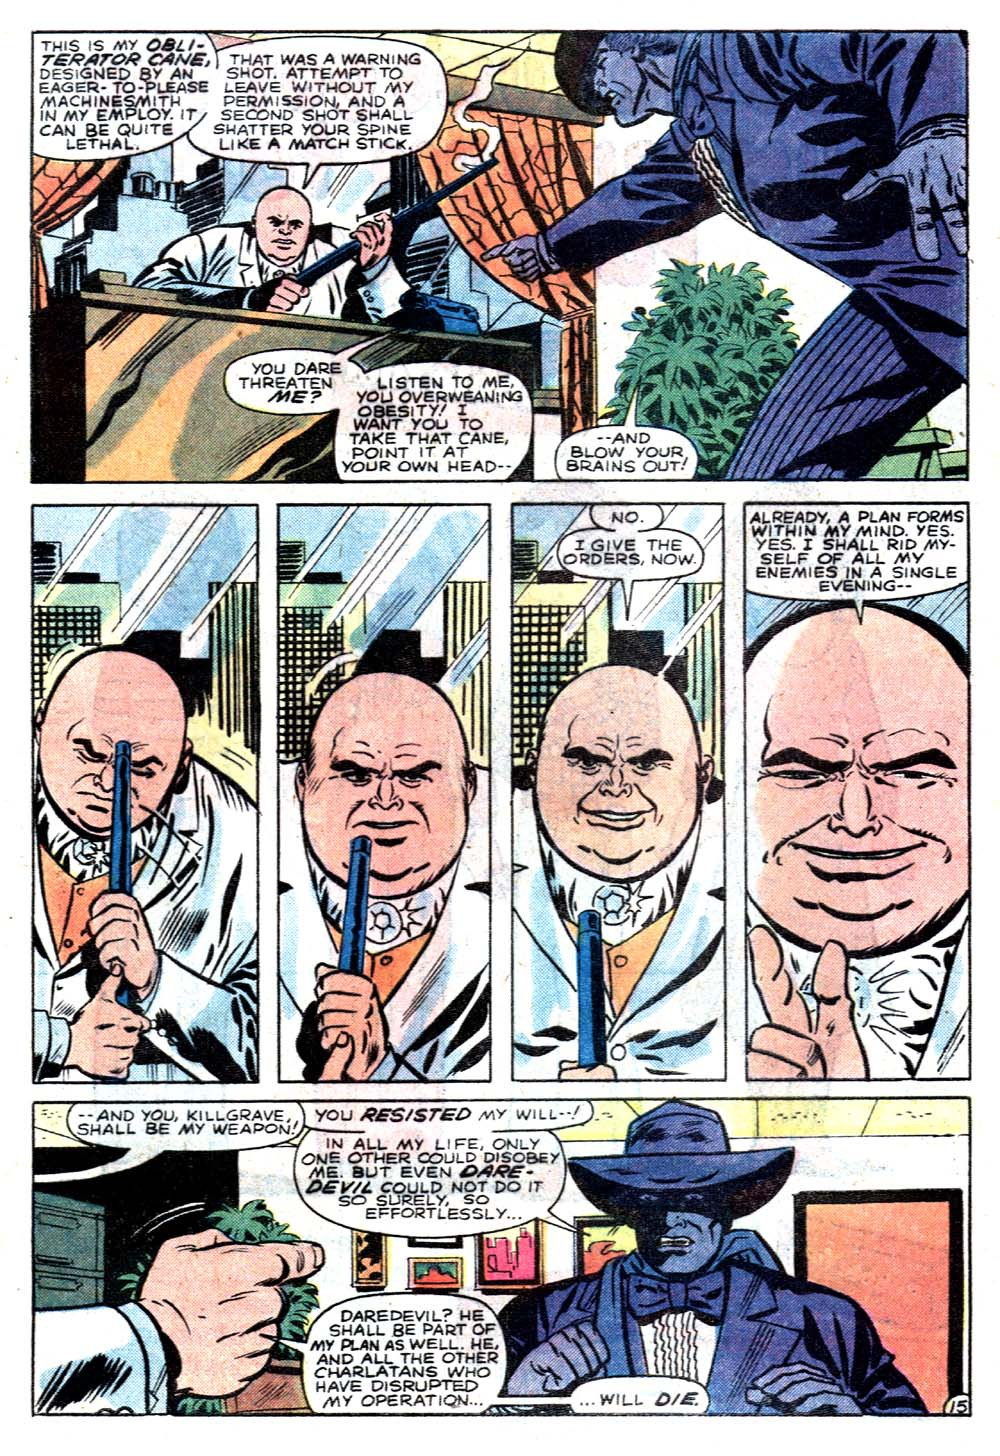 Kingpin manages to lure Spider-Man, Daredevil, Moon Knight, Power Man and Iron First to a charity event hosted by J. Jonah Jameson.